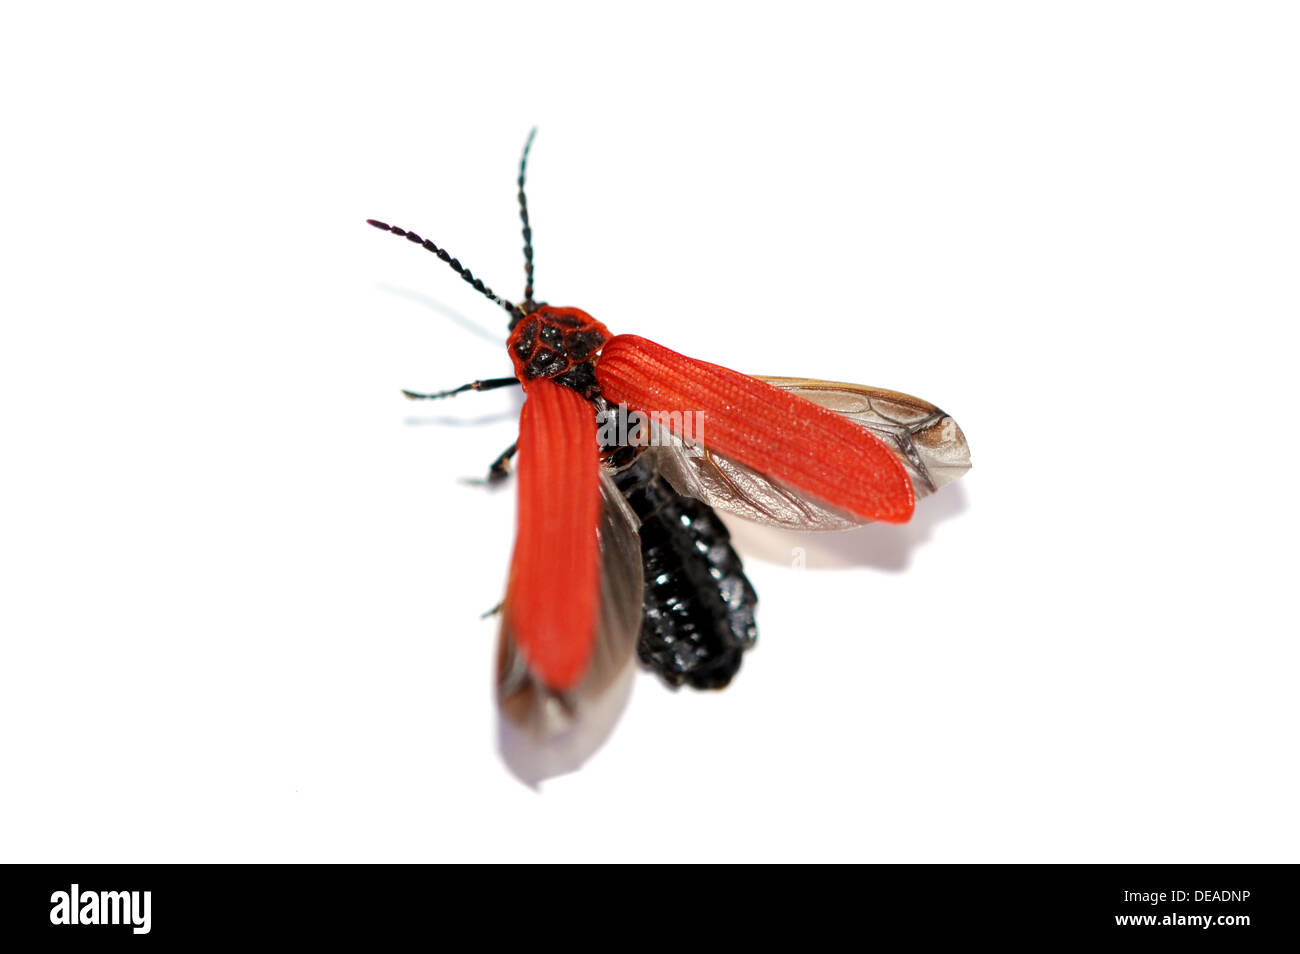 The red beetle Dictyoptera aurora about to fly - Stock Image